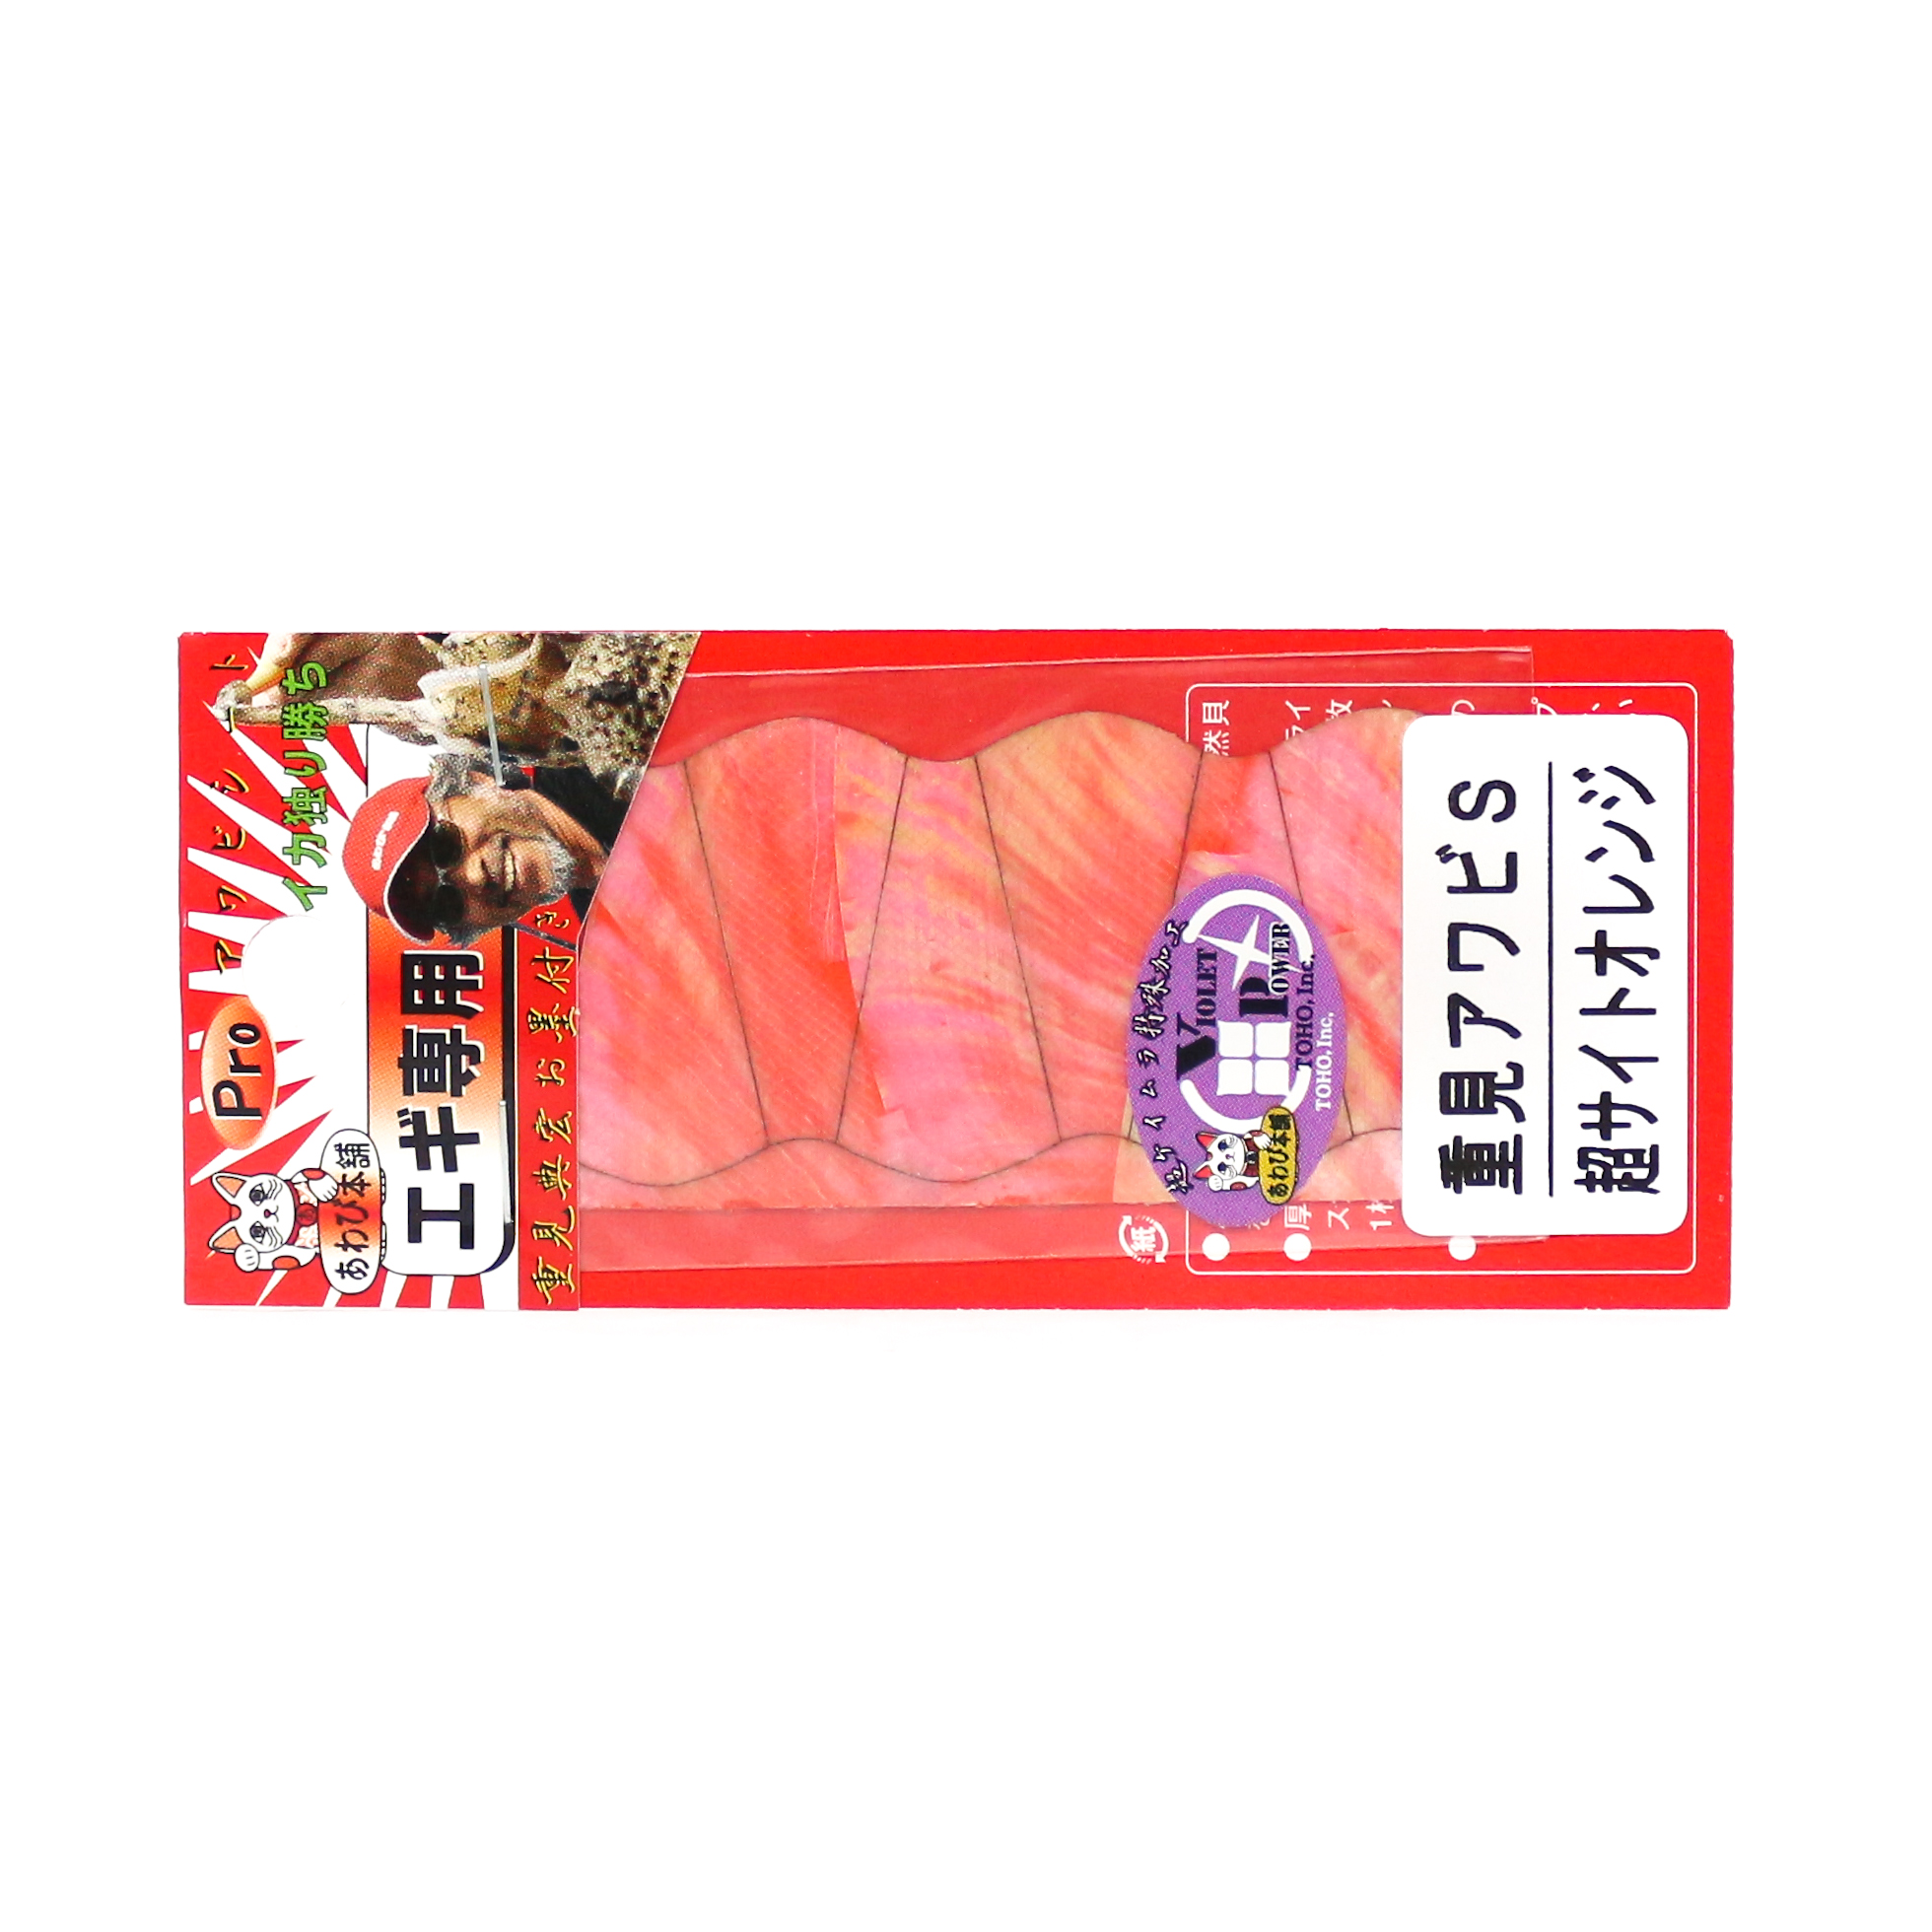 Awabi Honpo Pro Awabi Sheet Shigemi Awabi Size S 36 x 73 mm Orange (1227)